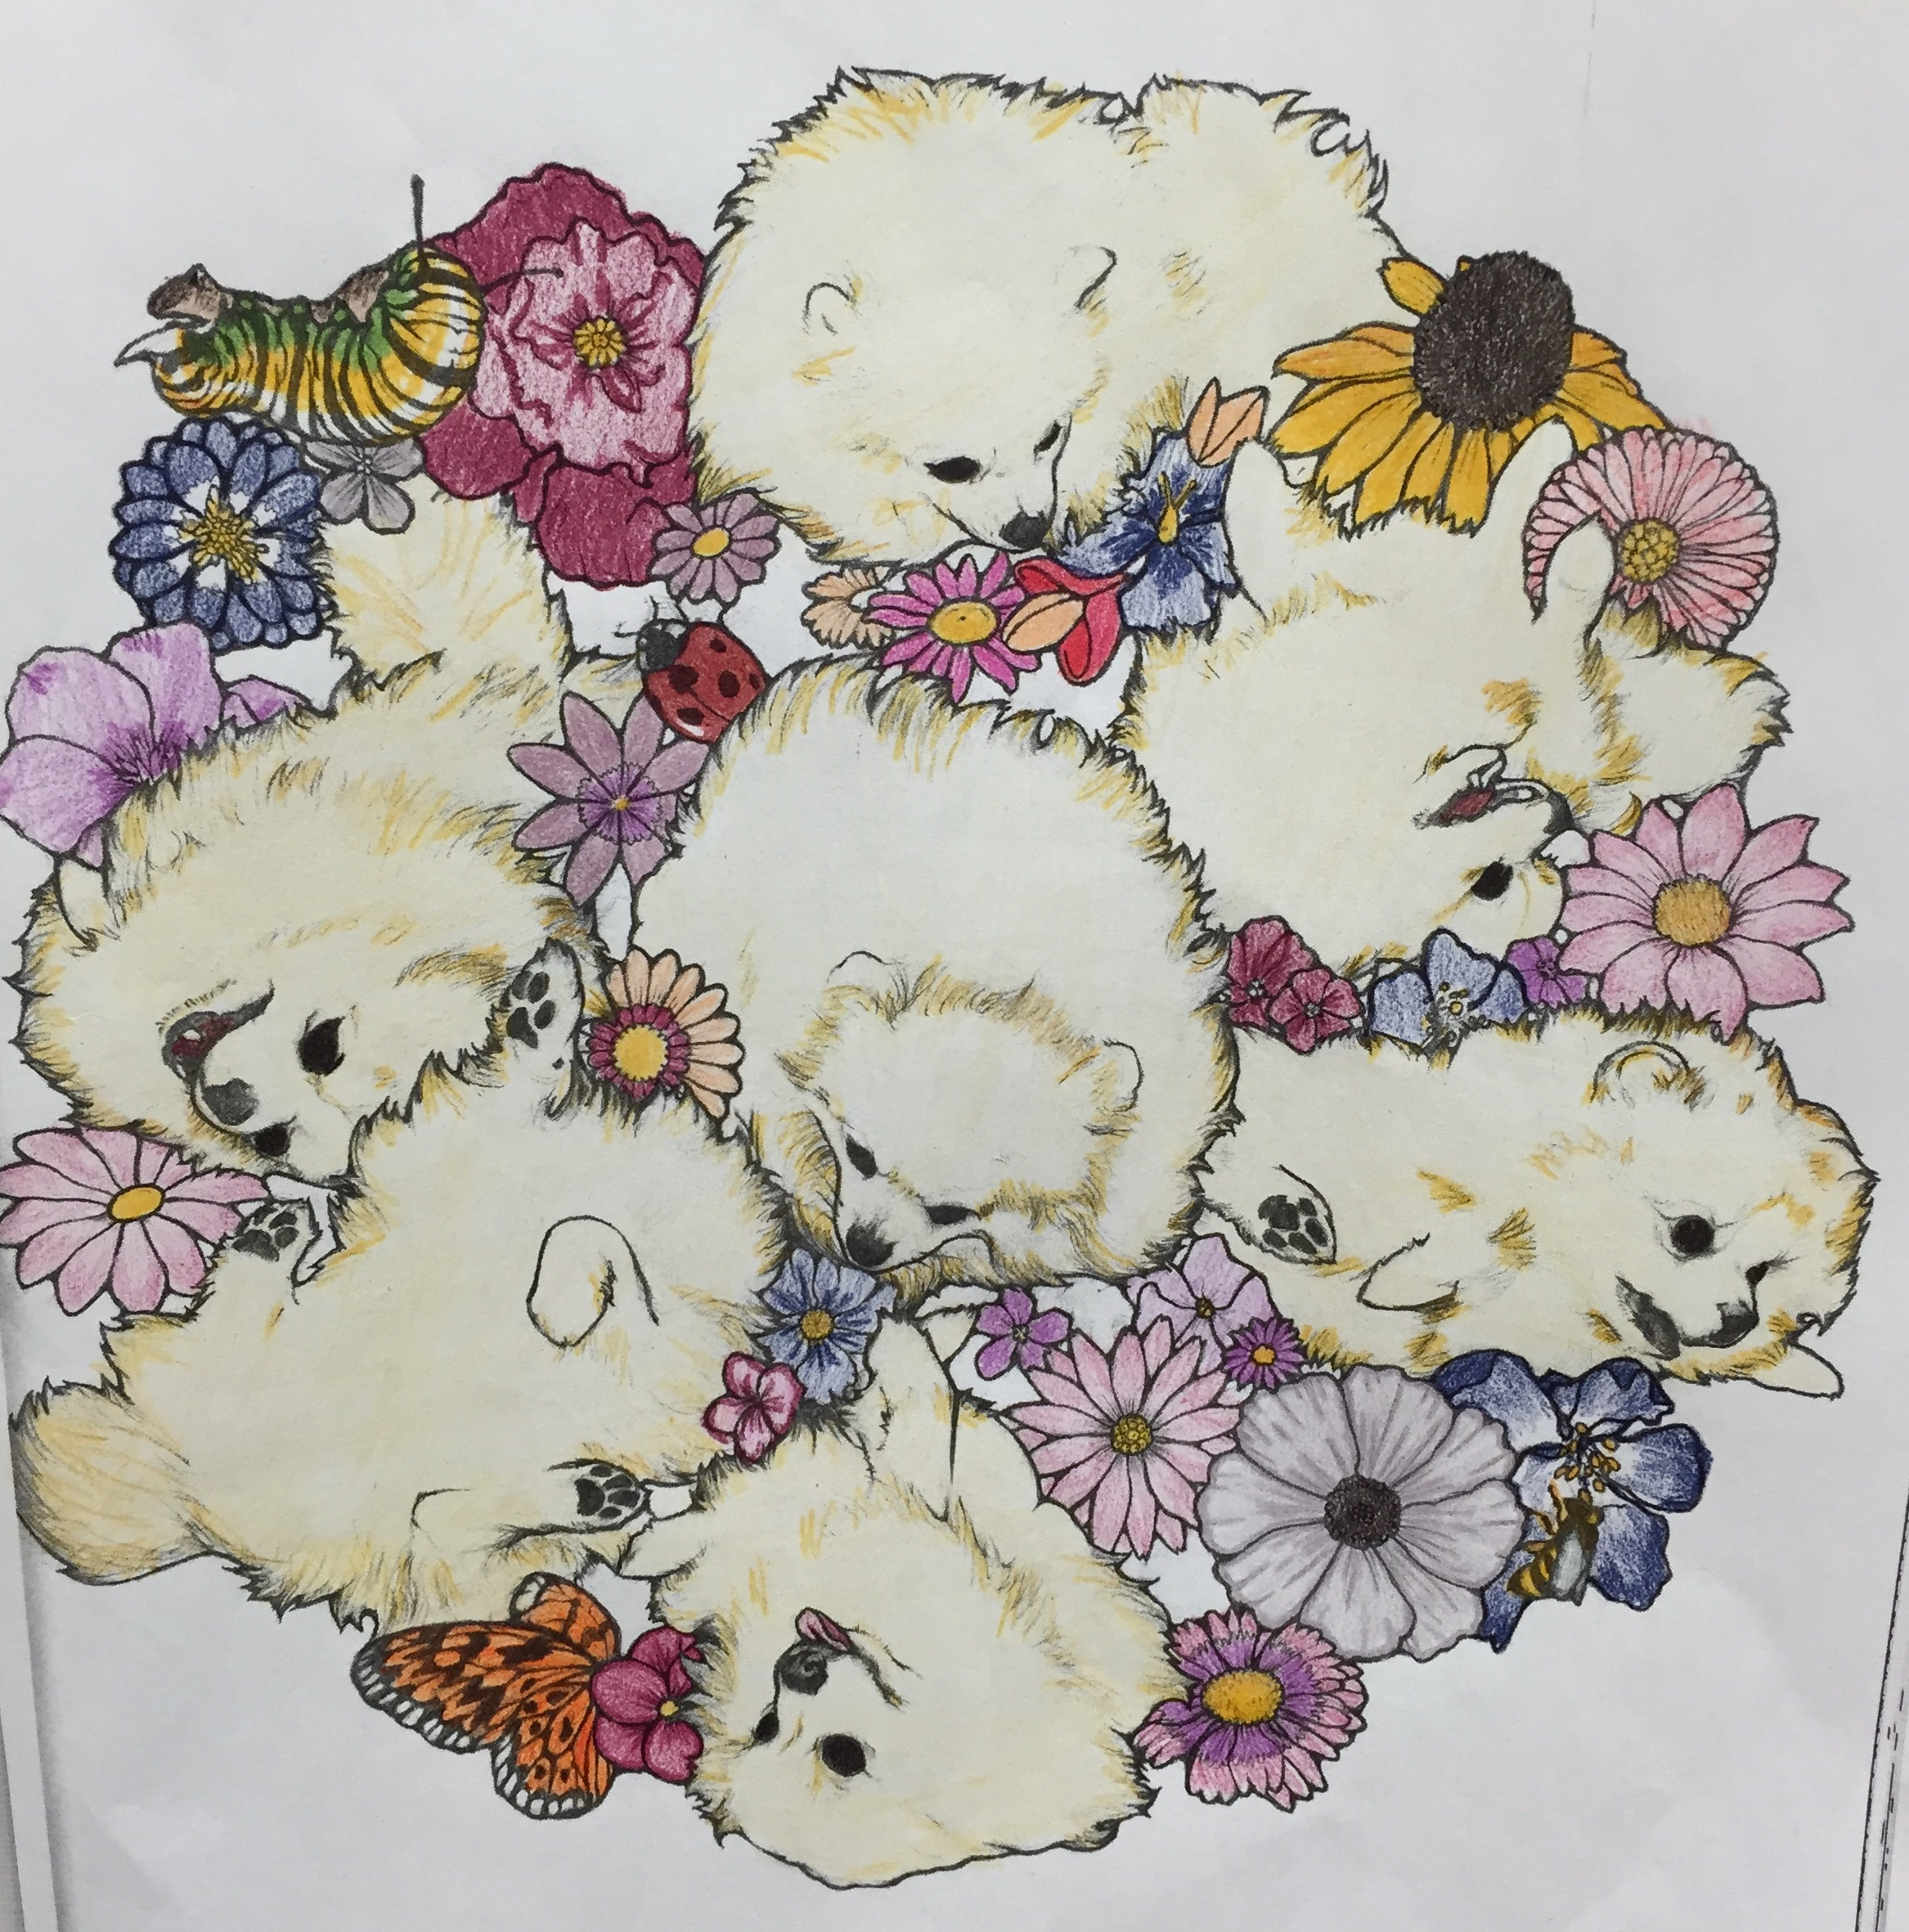 An illustration of Pomeranians with flowers.